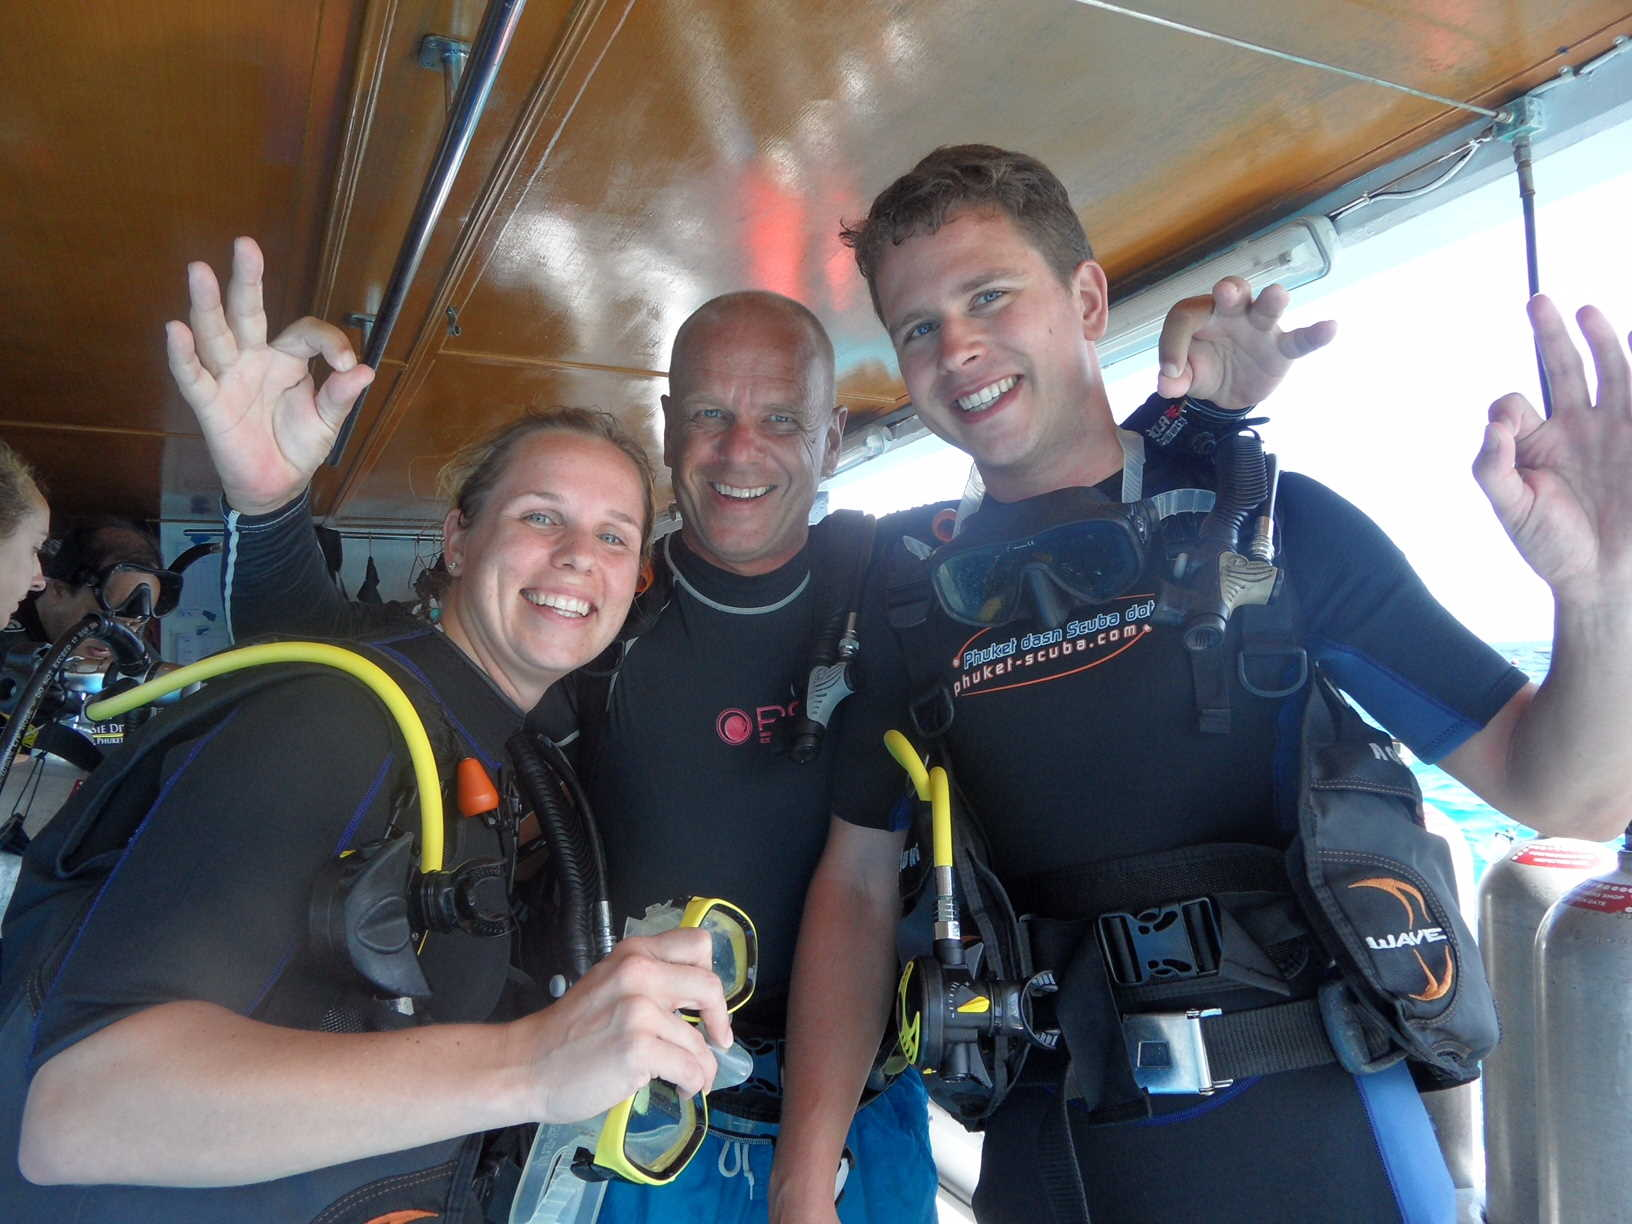 Steven with open water students on the Phuket dash Scuba diveboat.